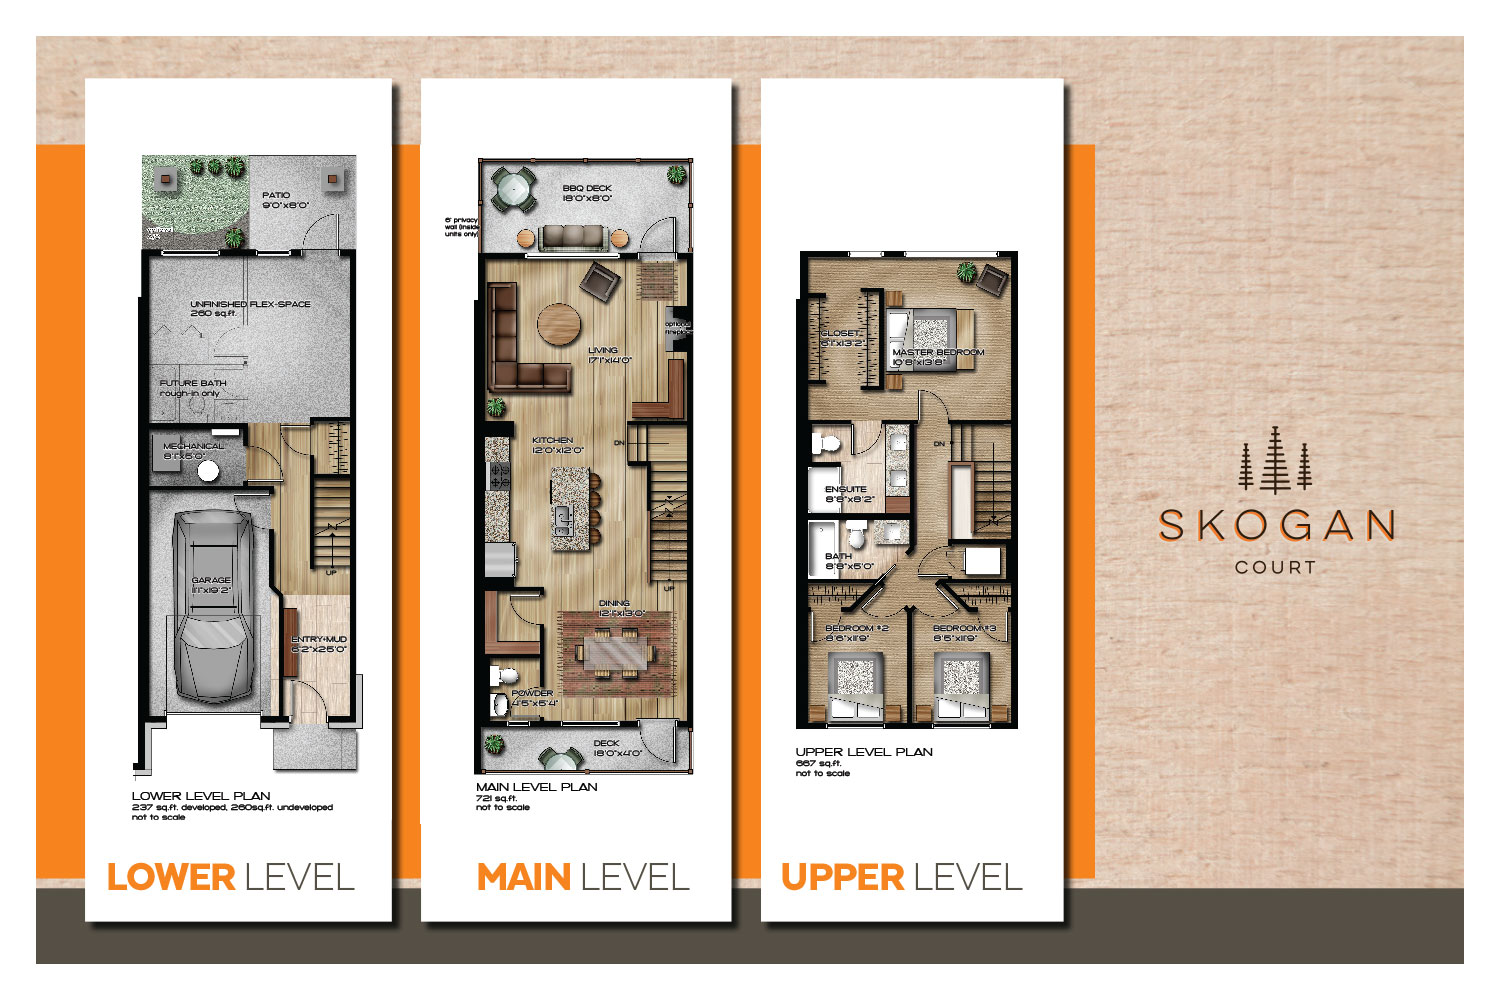 Townhome Layout - CLICK TO EXPAND